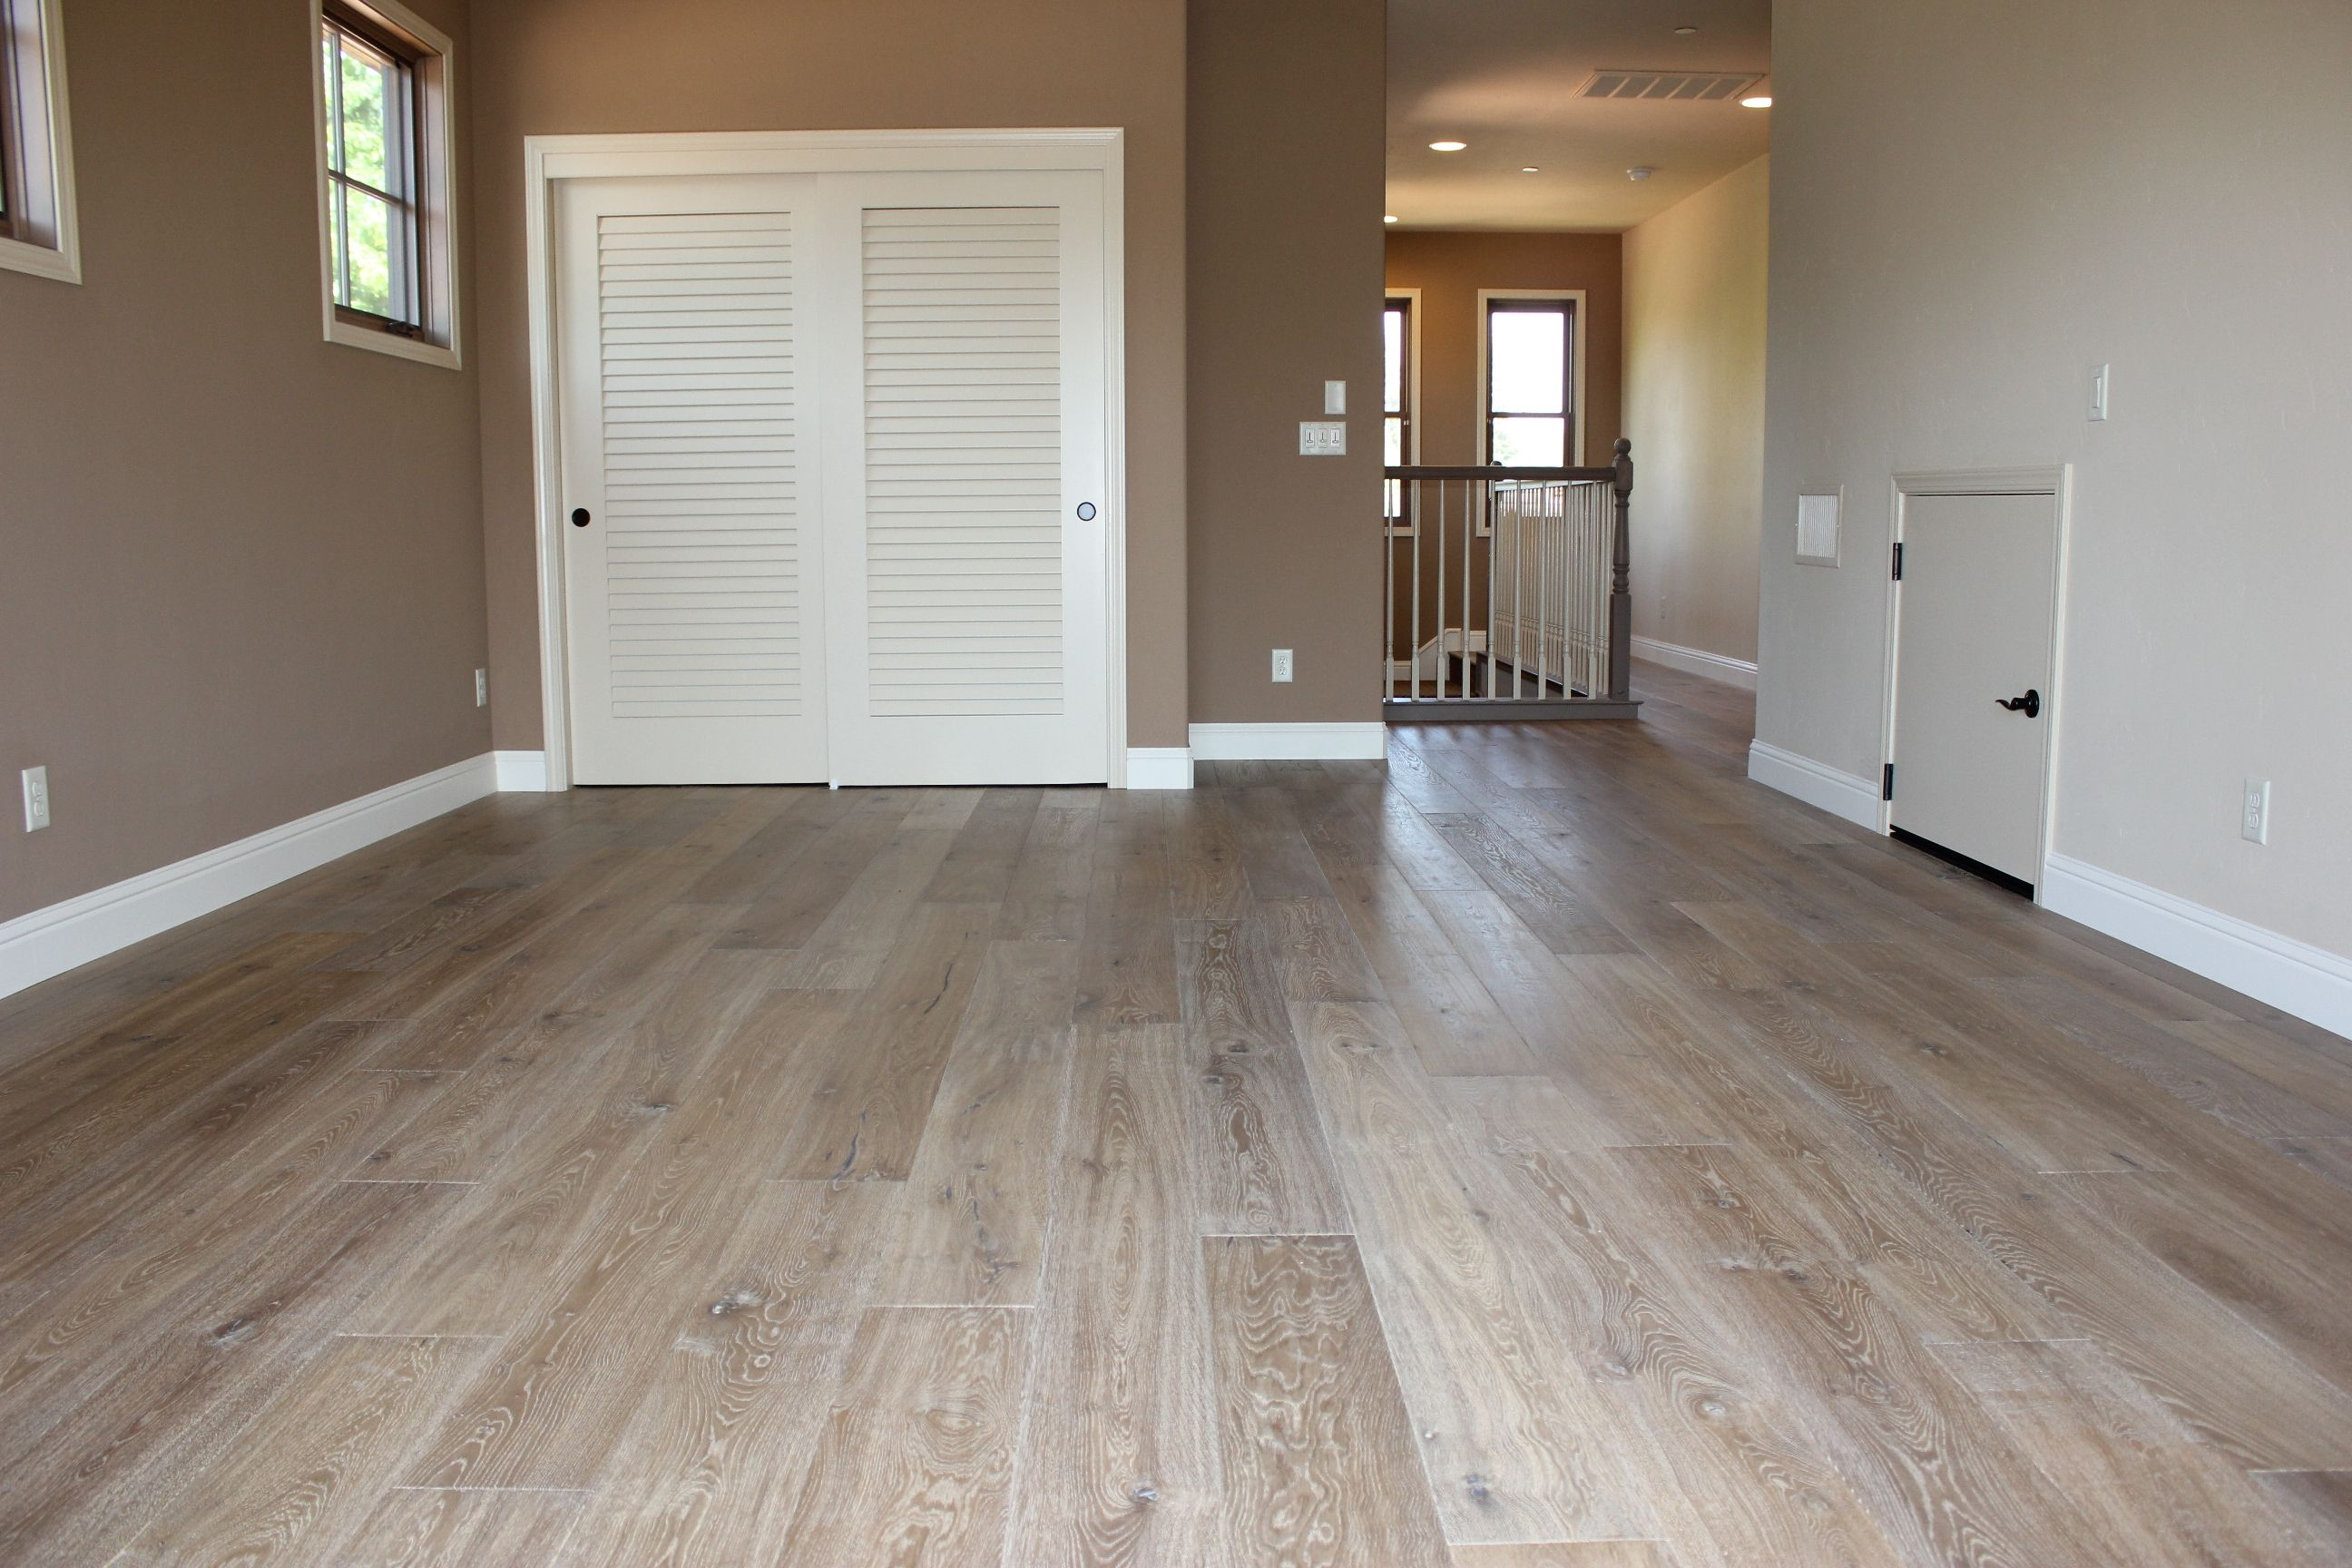 Superior Royal Oak Hardwood, Color: Canewood Installed By Simas